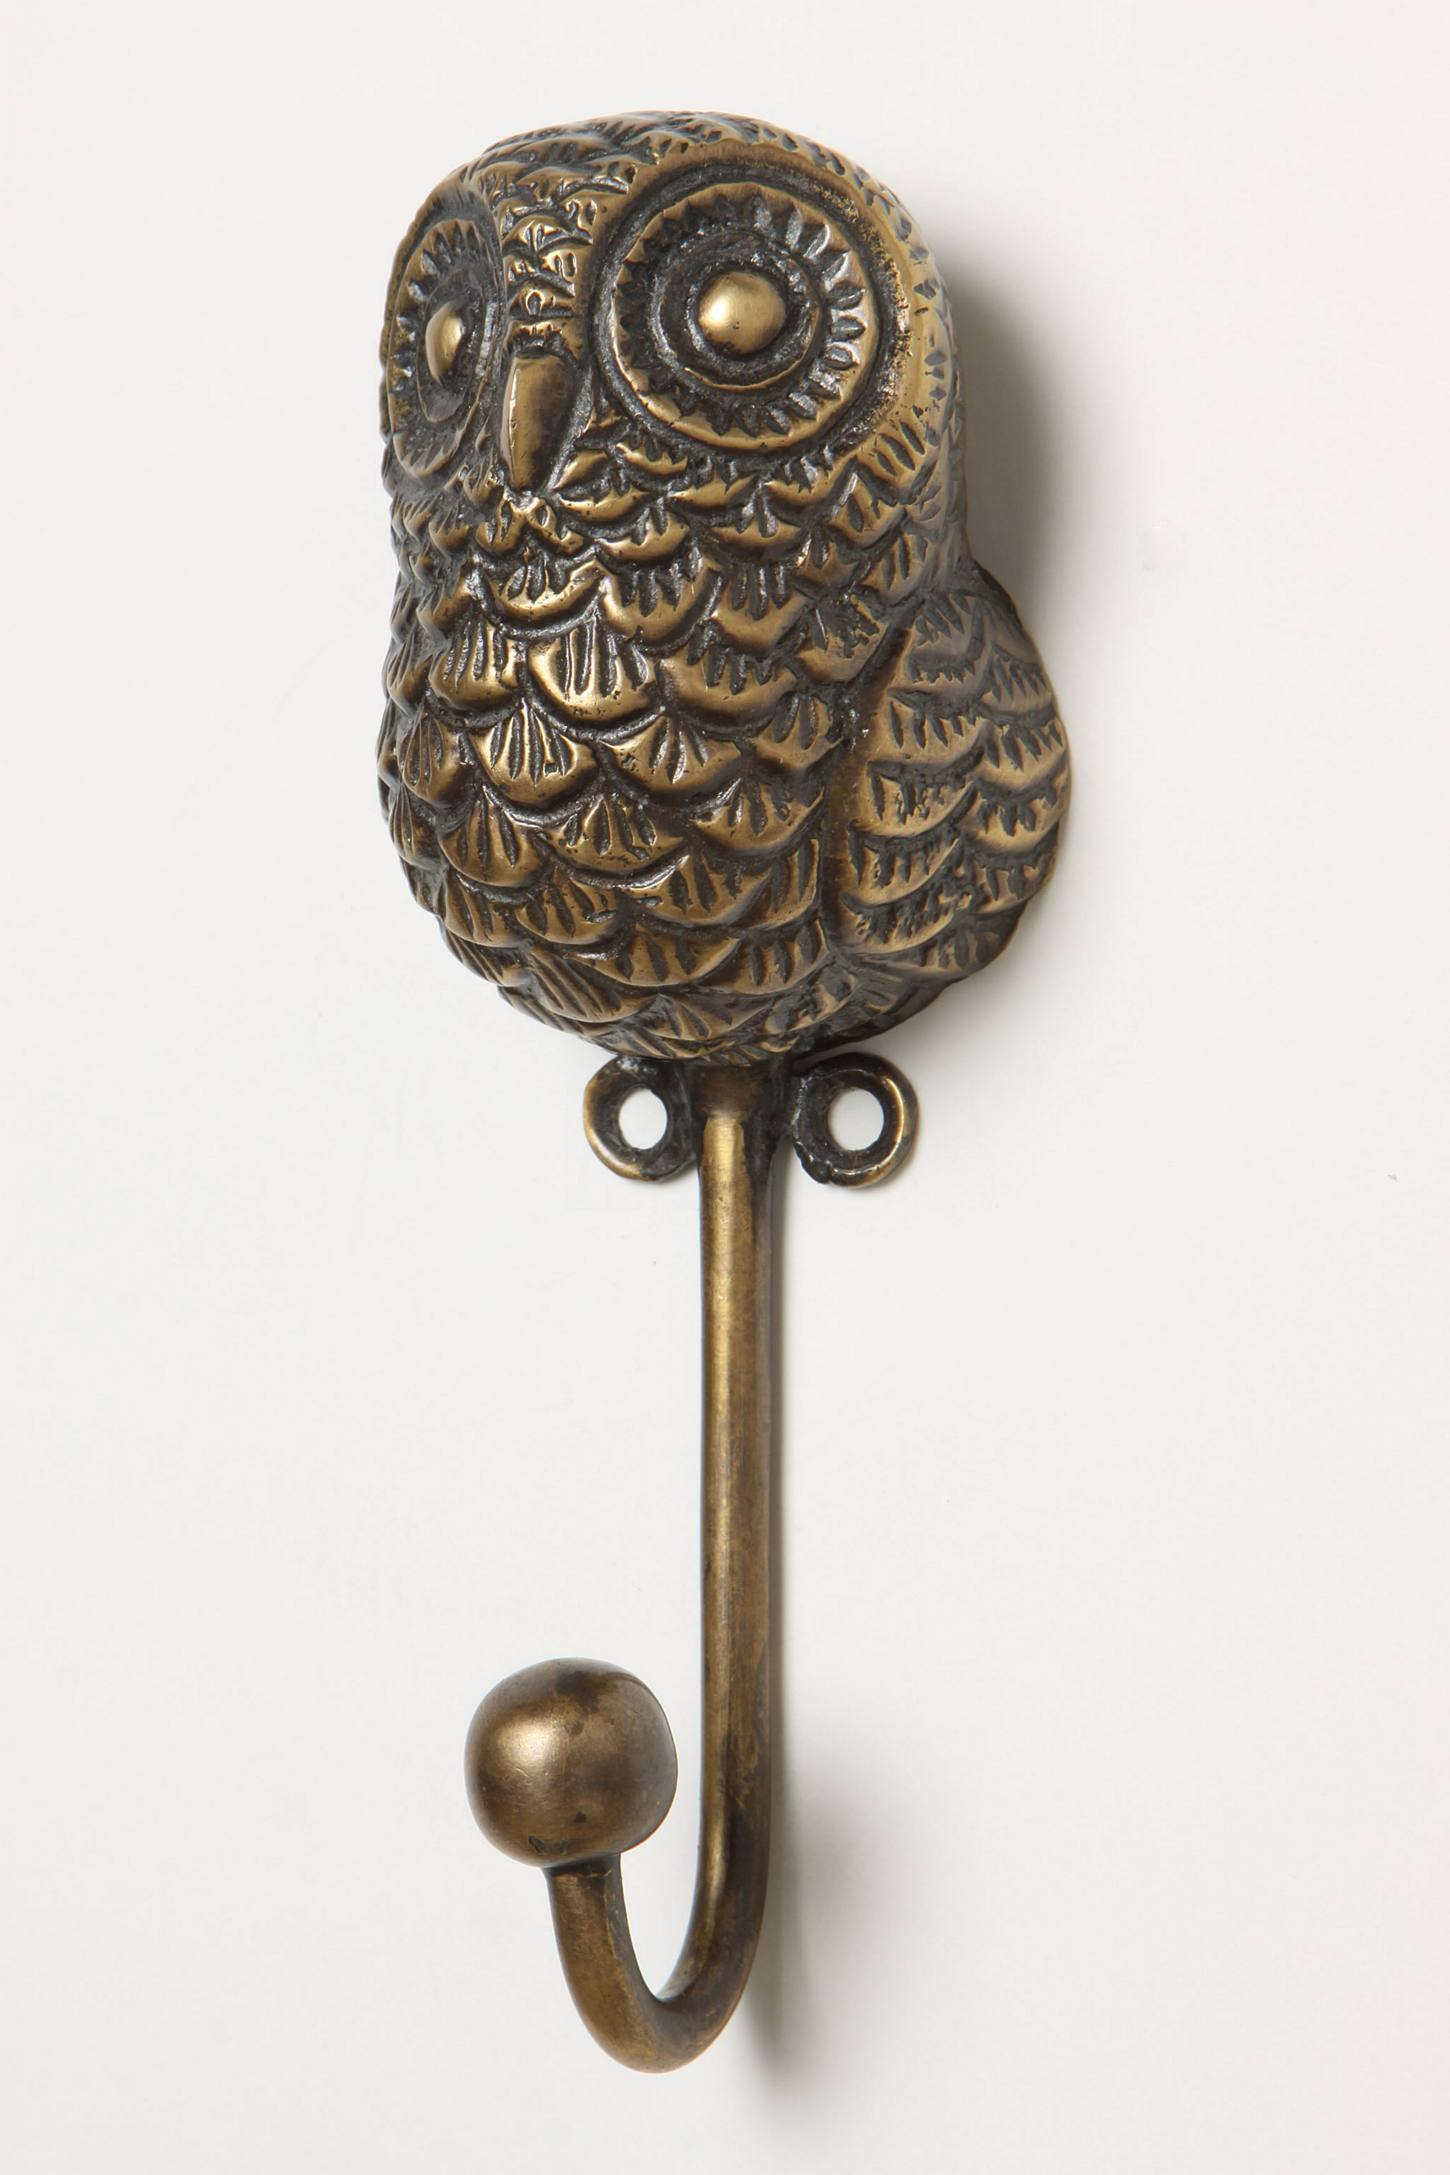 Slide View: 1: Creature Kingdom Hook, Owl